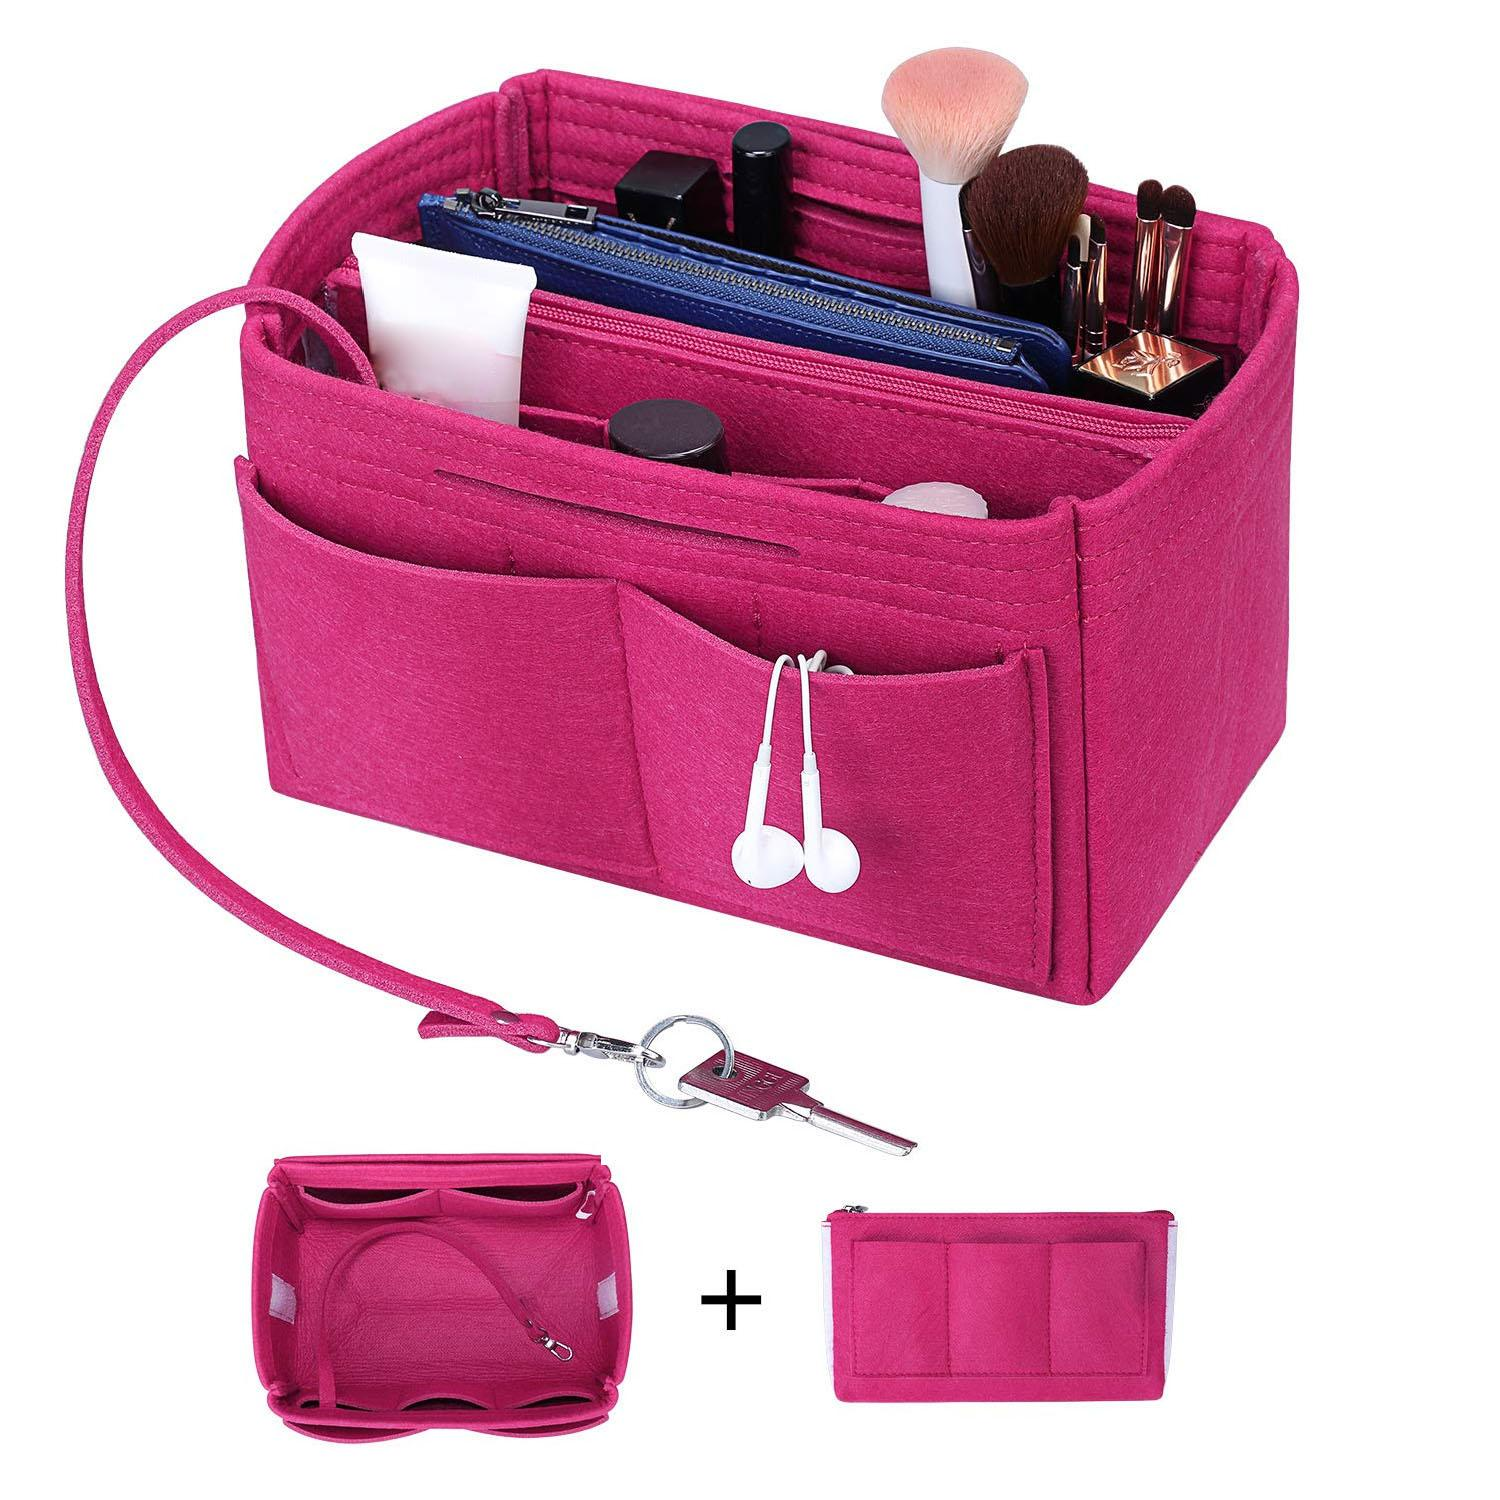 Purse Organizer Insert Shaper Felt Bag in Bag Handbag Organizer with Zipper Fit all kinds of Tote/purses Cosmetic Toiletry Bags